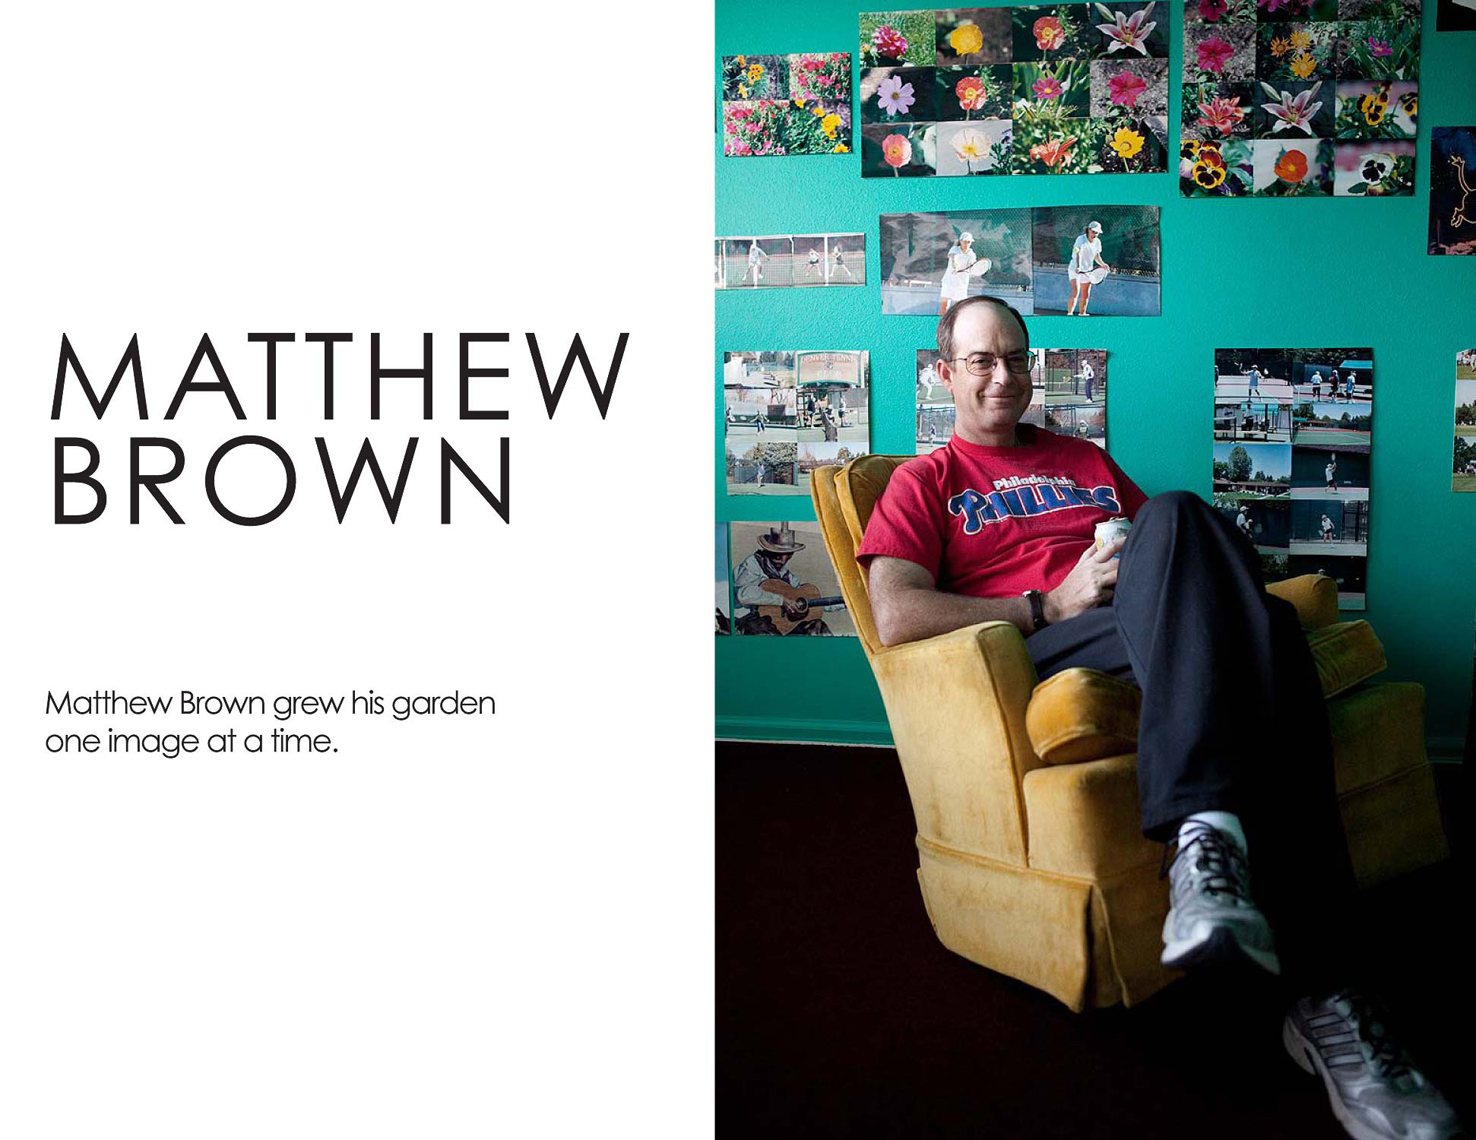 Matthew Brown, Photographer